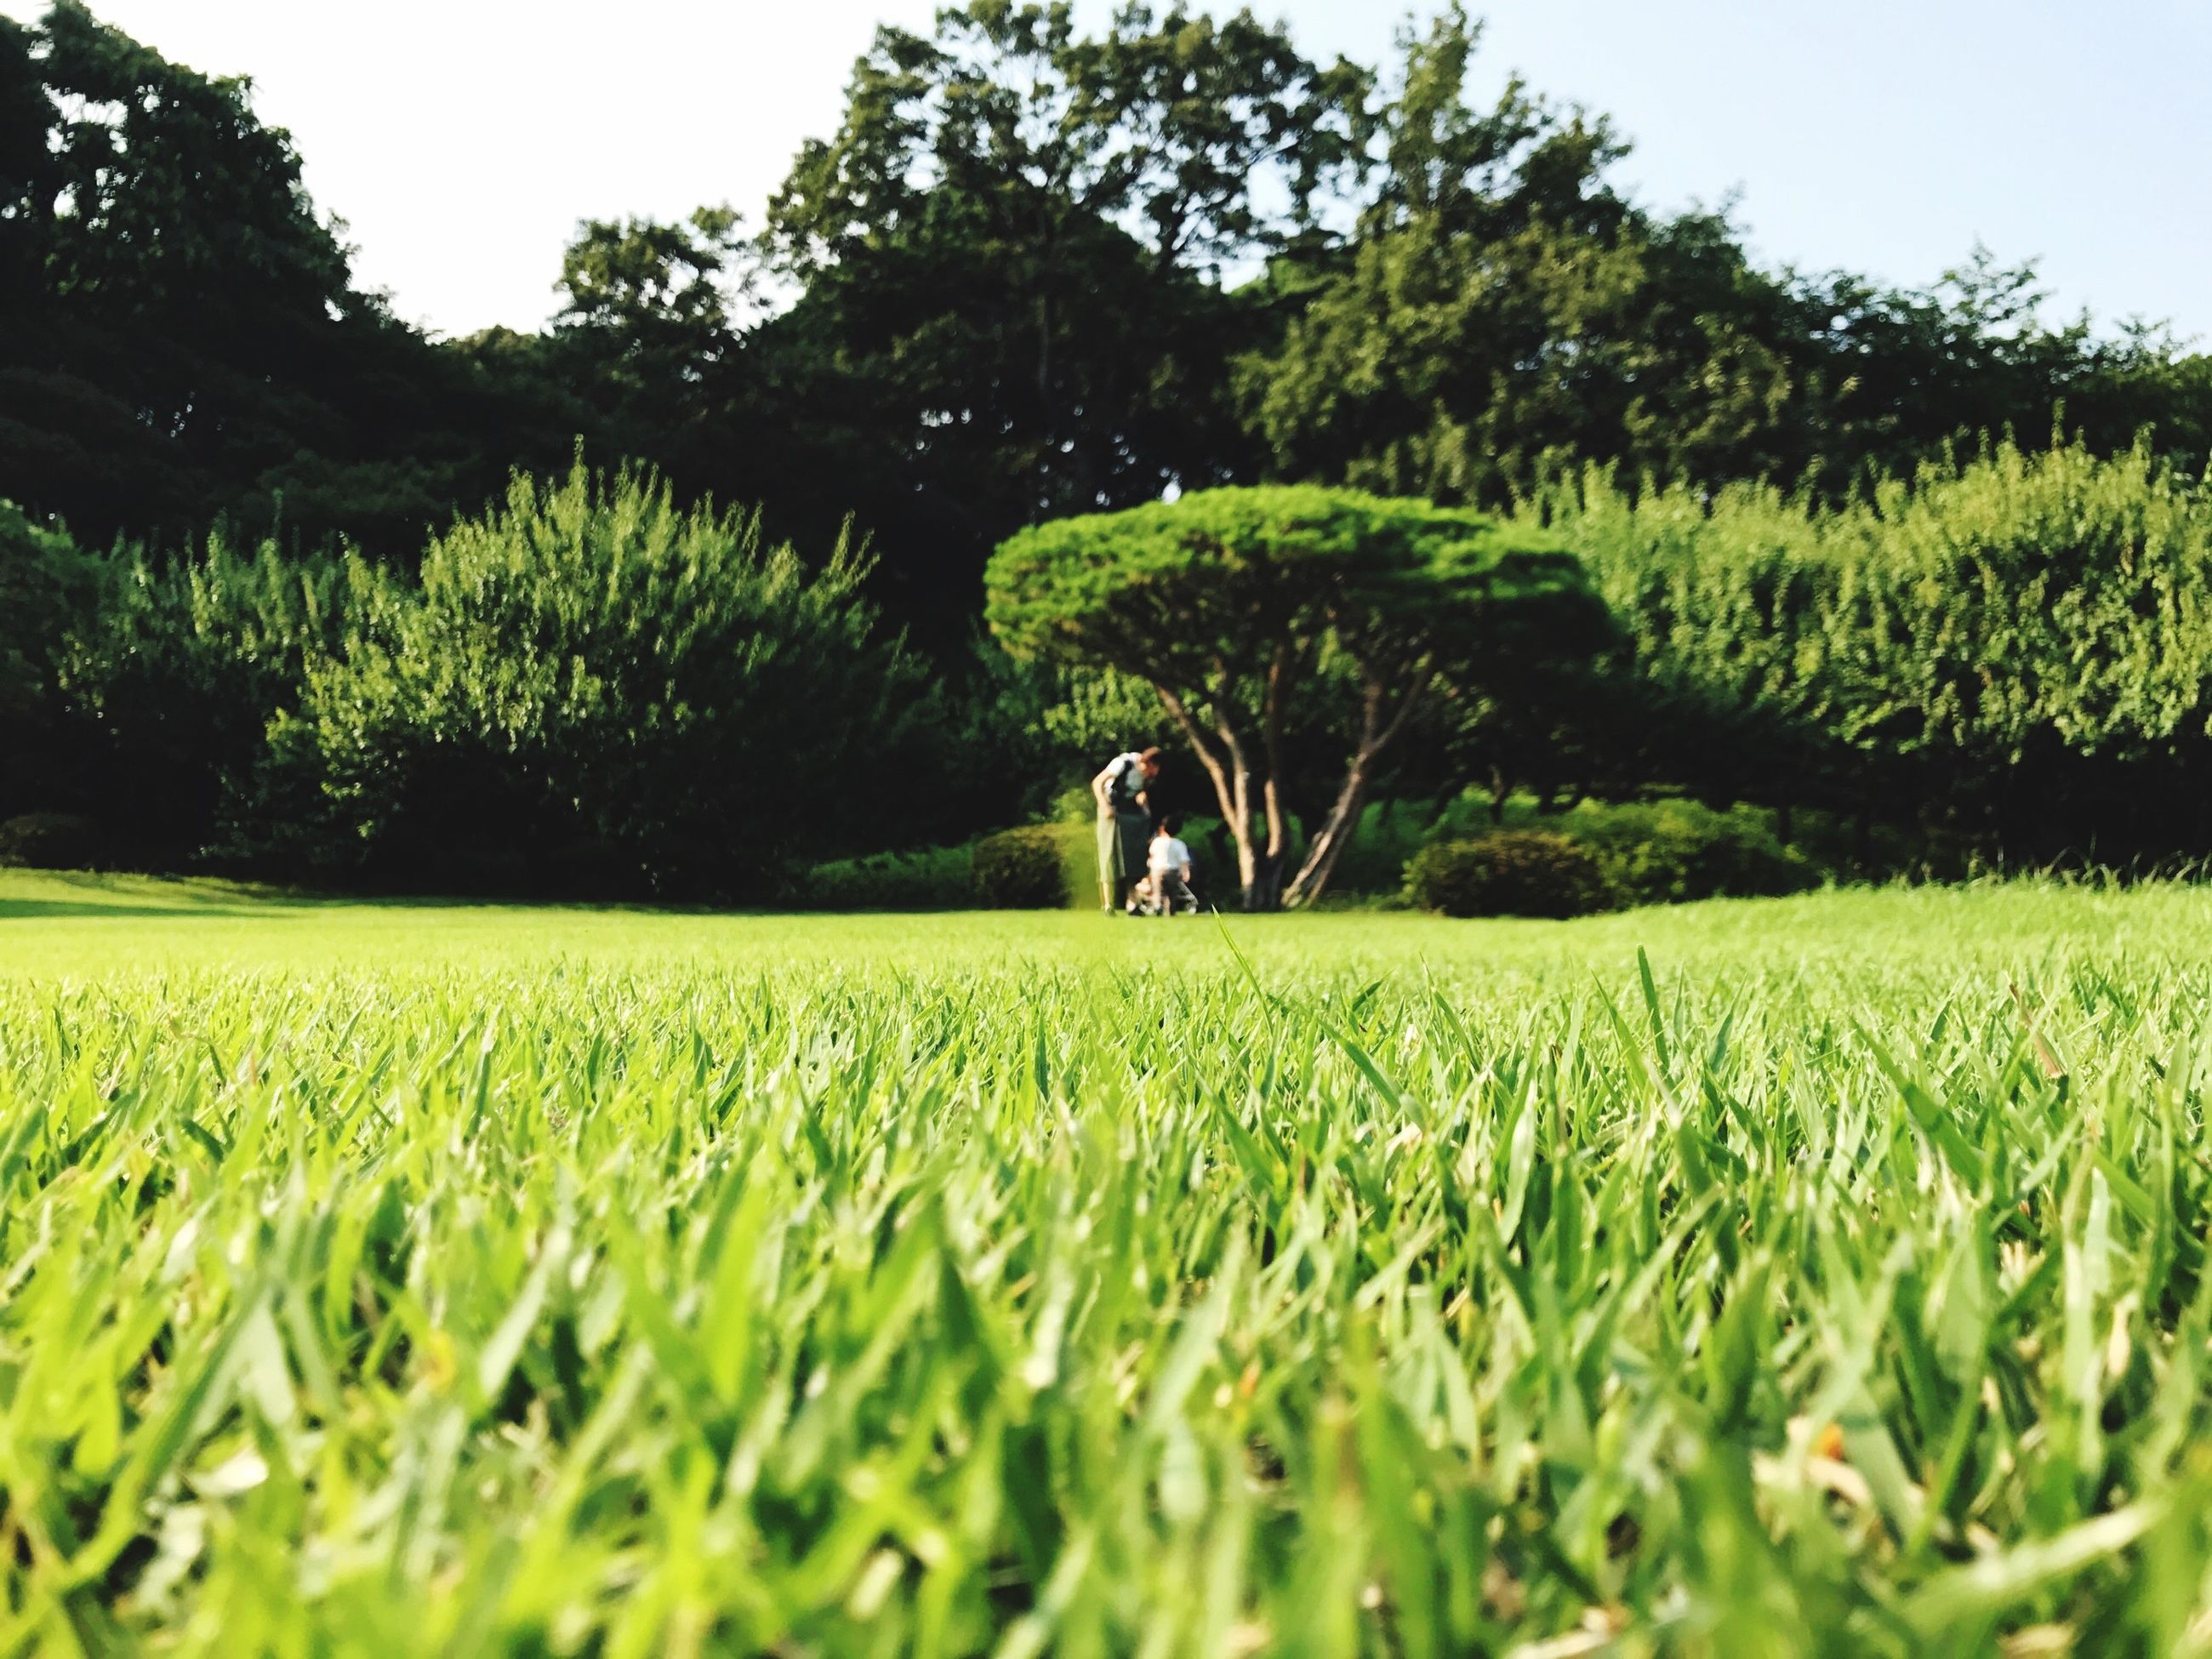 grass, growth, tree, field, green color, nature, day, walking, outdoors, full length, real people, men, beauty in nature, sky, golf course, people